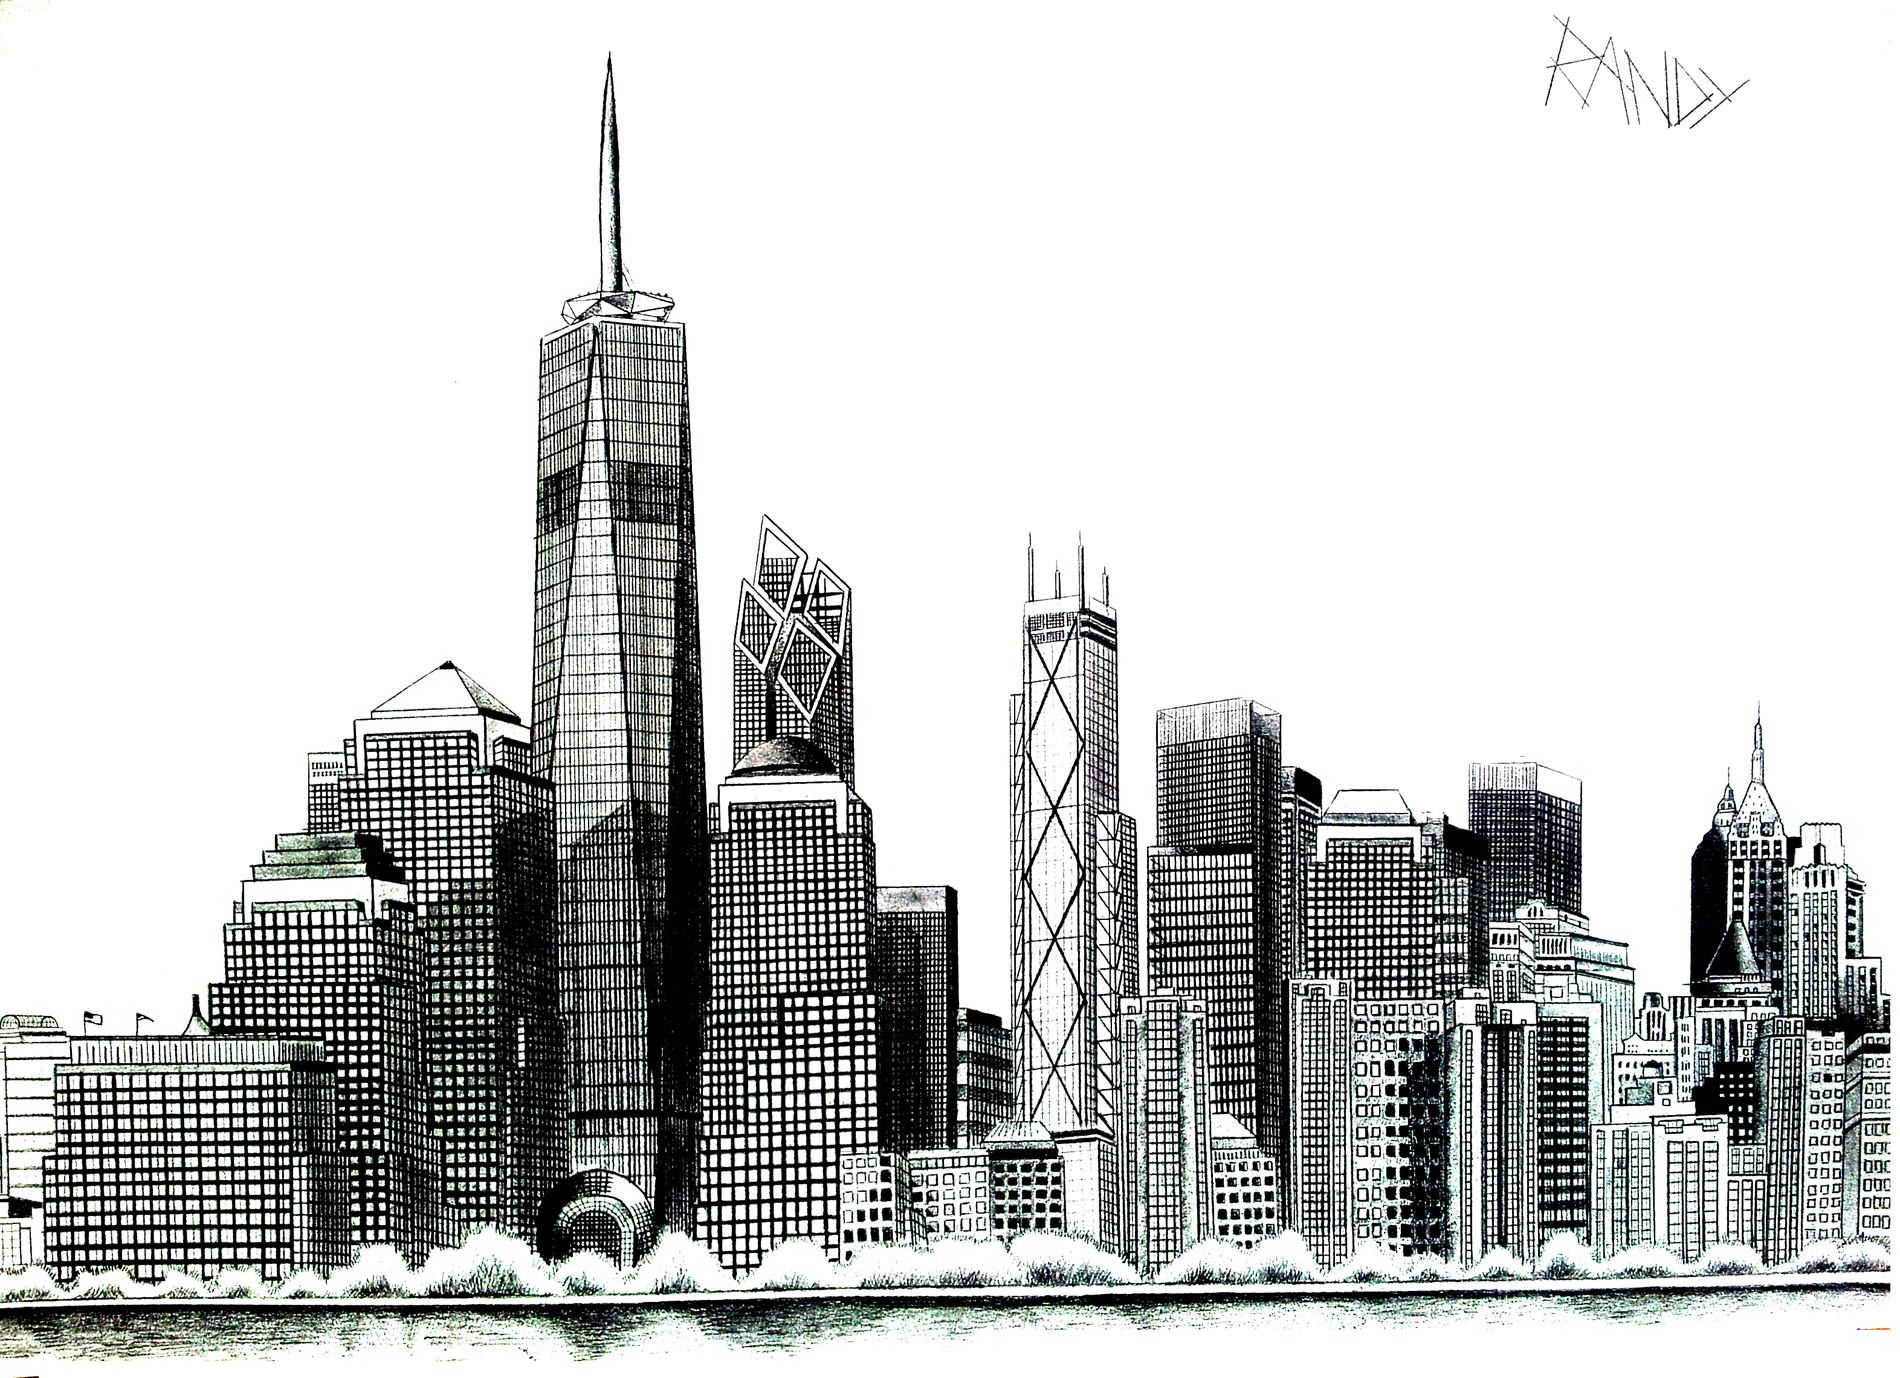 Dessin Immeuble En Perspective New York Disegni Da Colorare Per Adulti